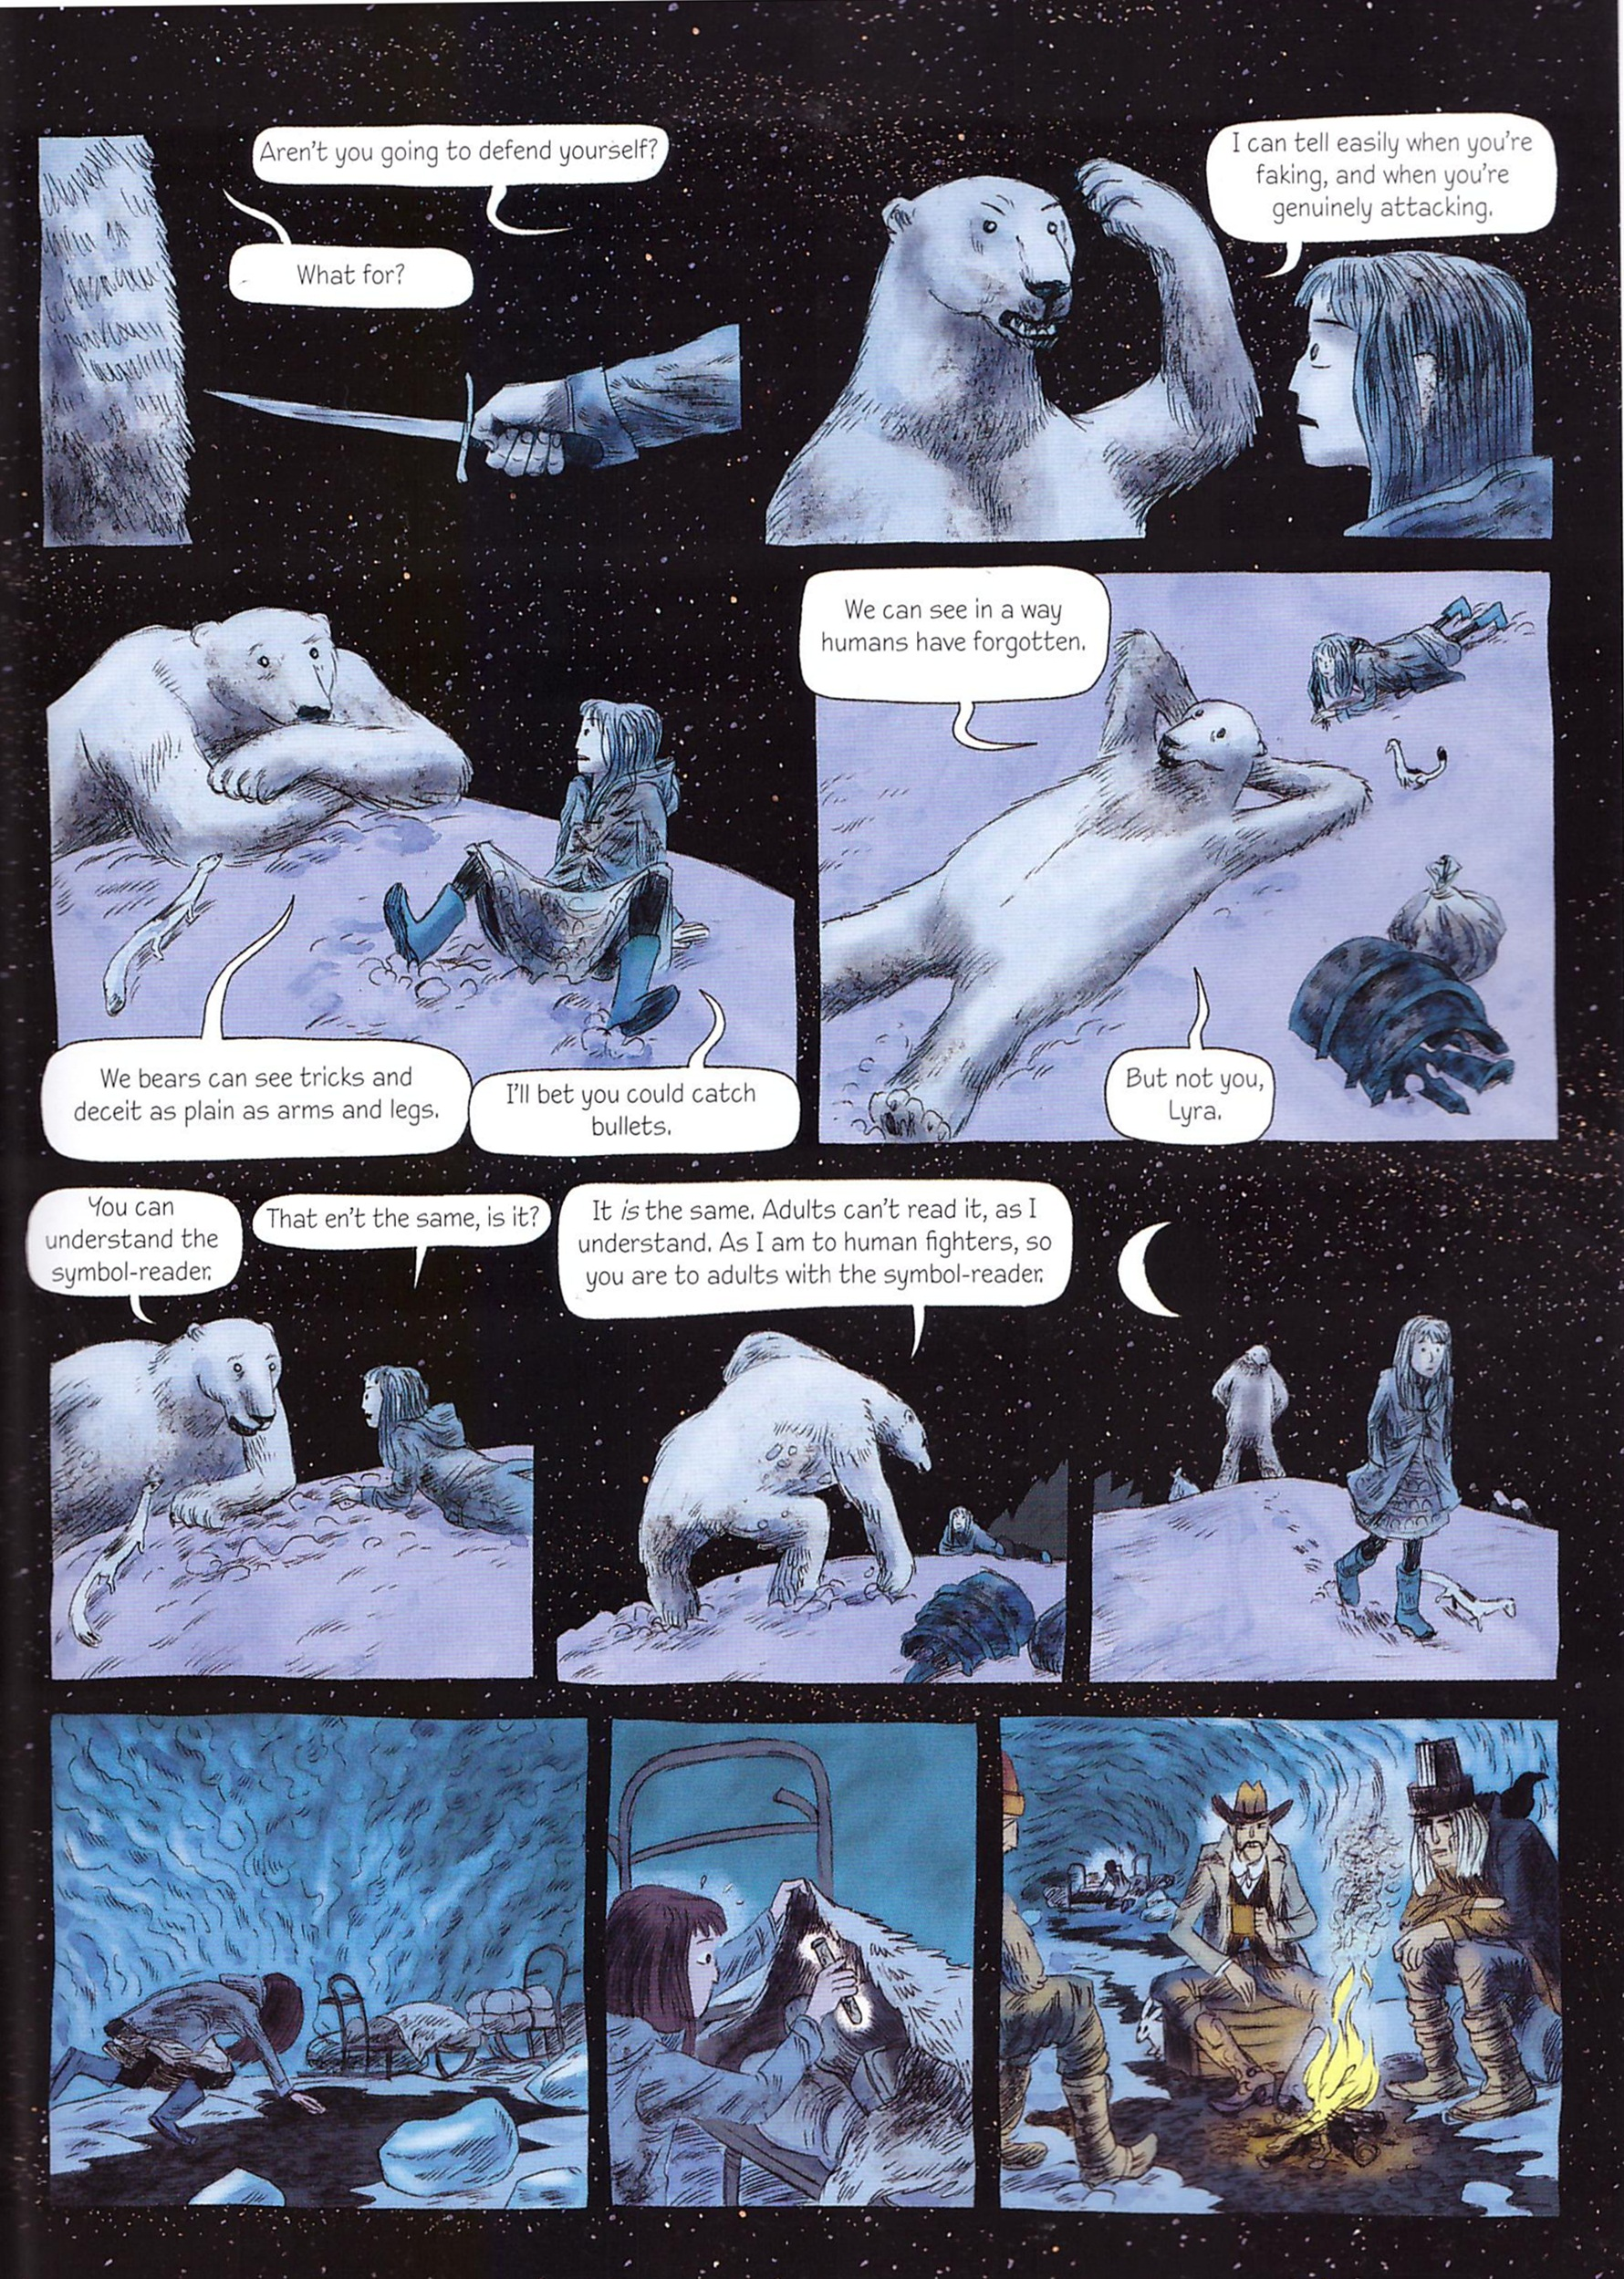 Northern Lights The Graphic Novel review